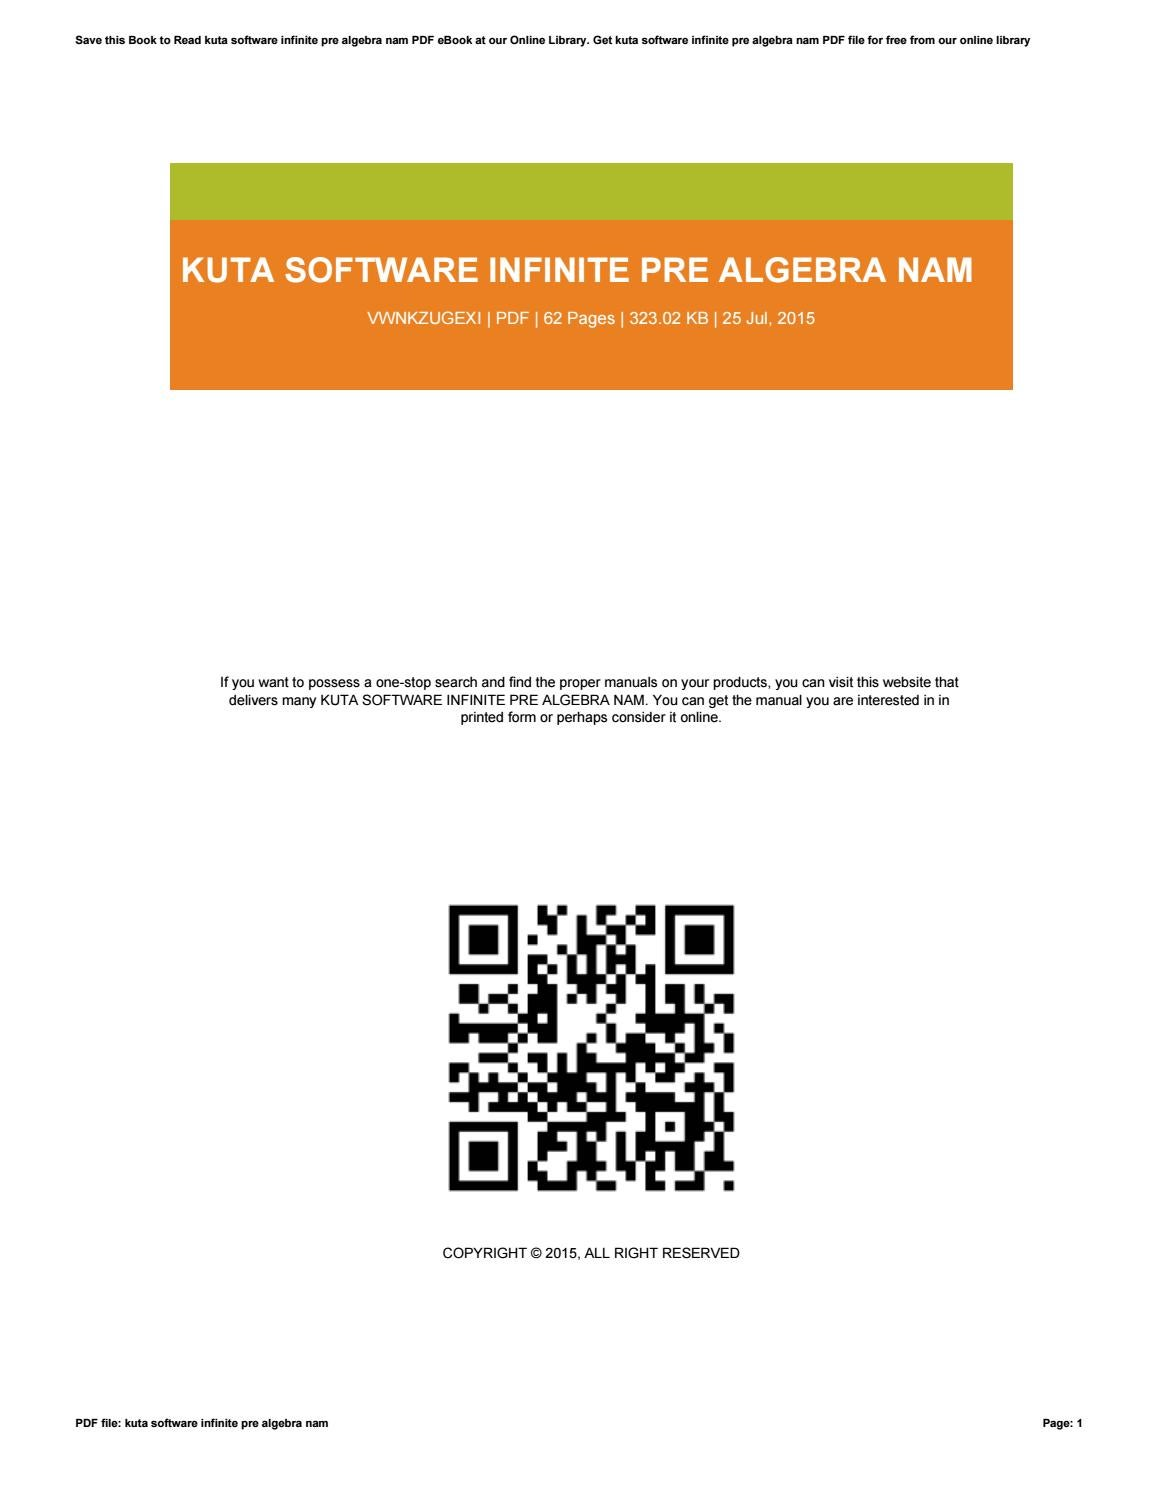 Kuta software infinite pre algebra nam by SandraBallard4891 - issuu